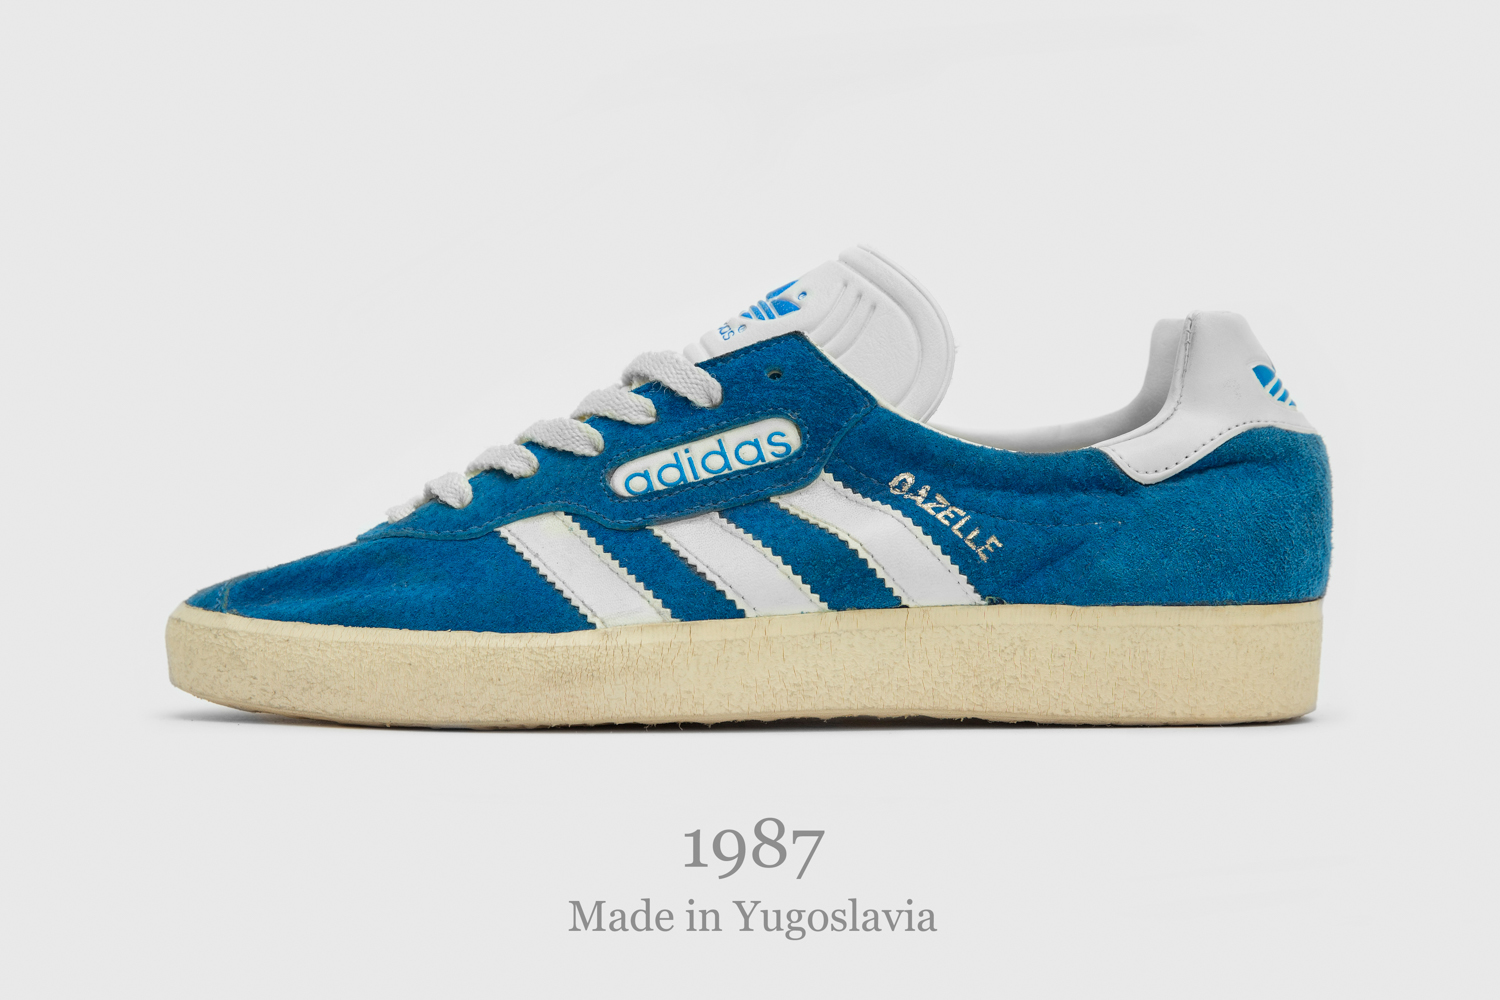 size_HQ_Lockup_adidas_originals_gazelle-8